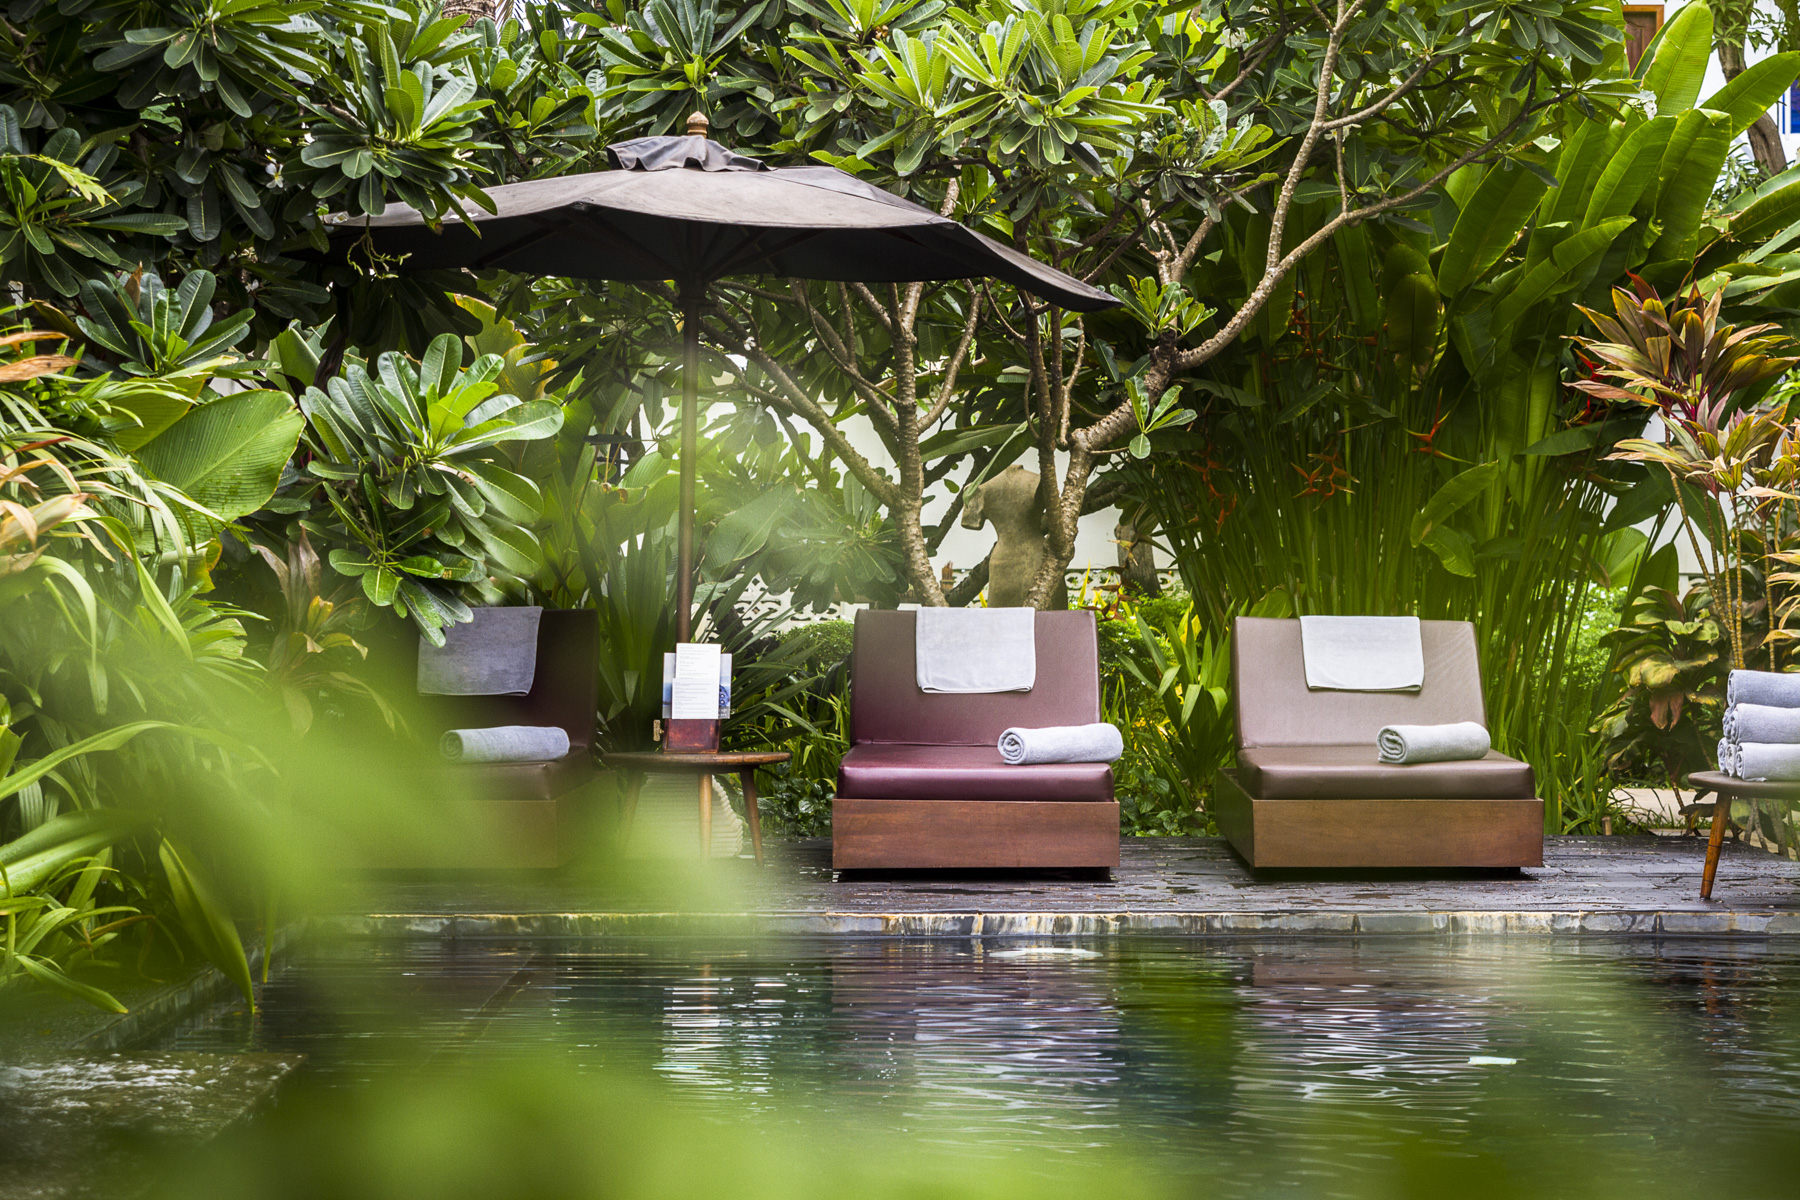 Sokkhak Boutique Resort - garden - 0051-Edit.jpg